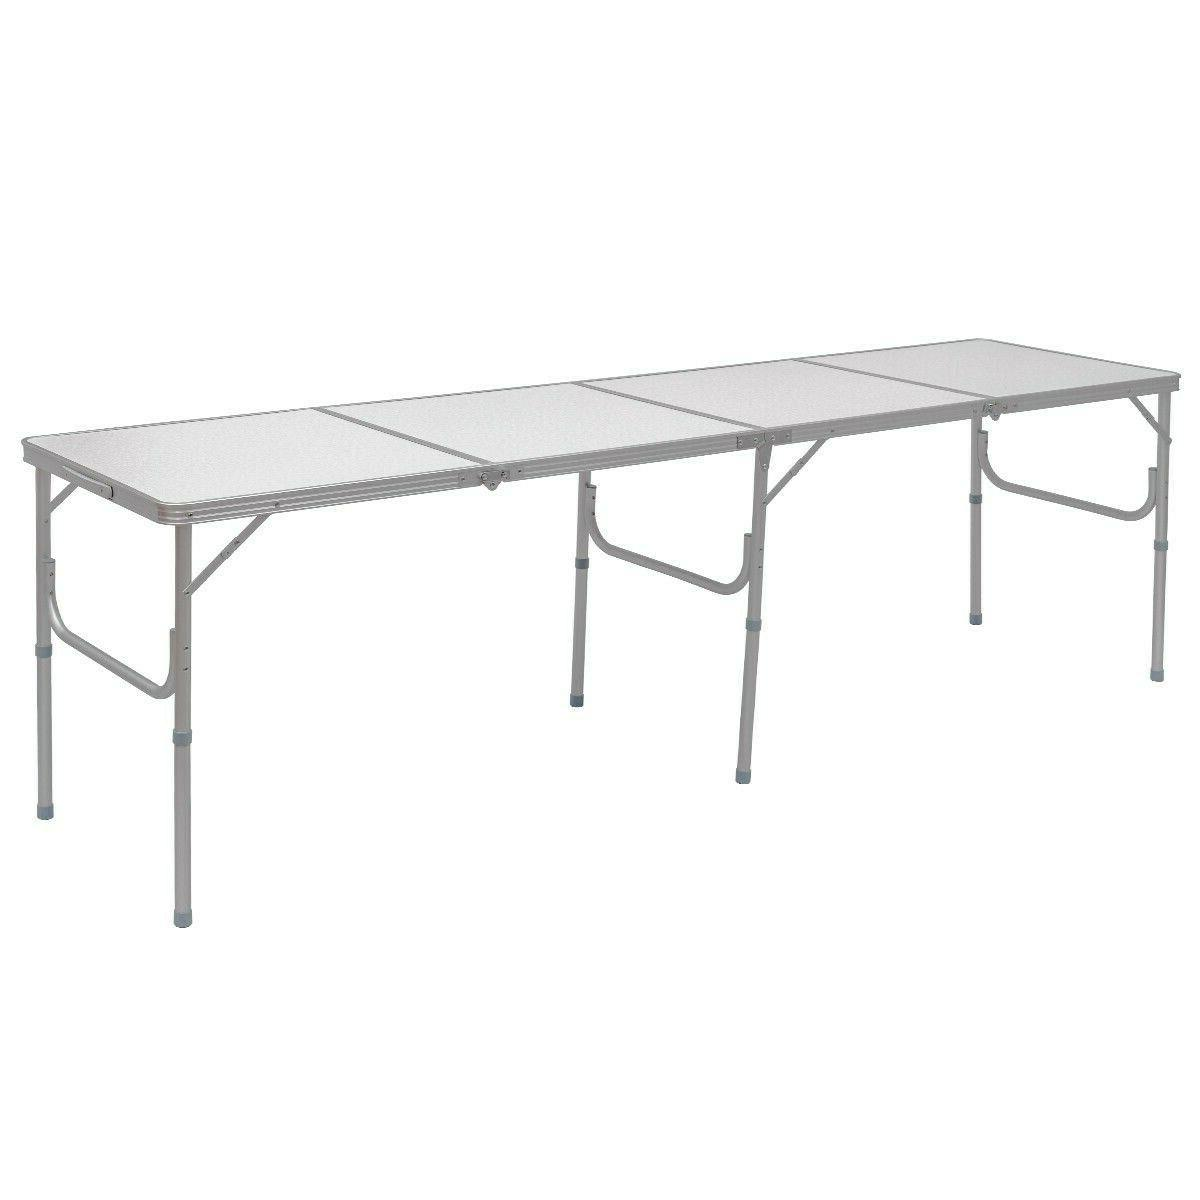 portable folding table 8 ft lightweight camping